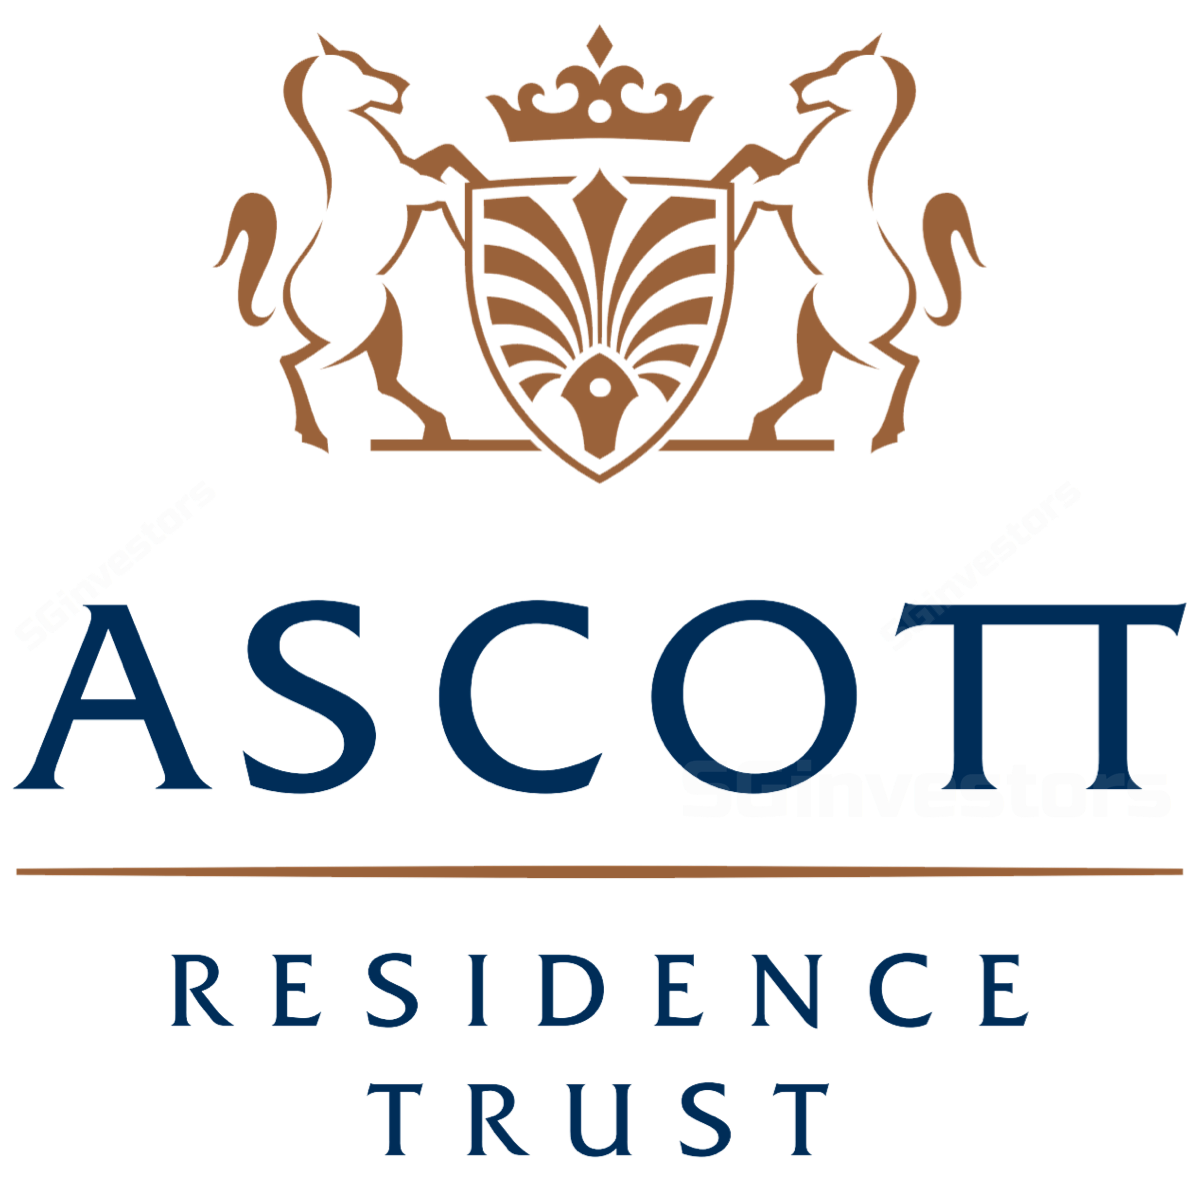 Ascott Residence Trust - DBS Vickers 2017-01-04: Unrealised potential